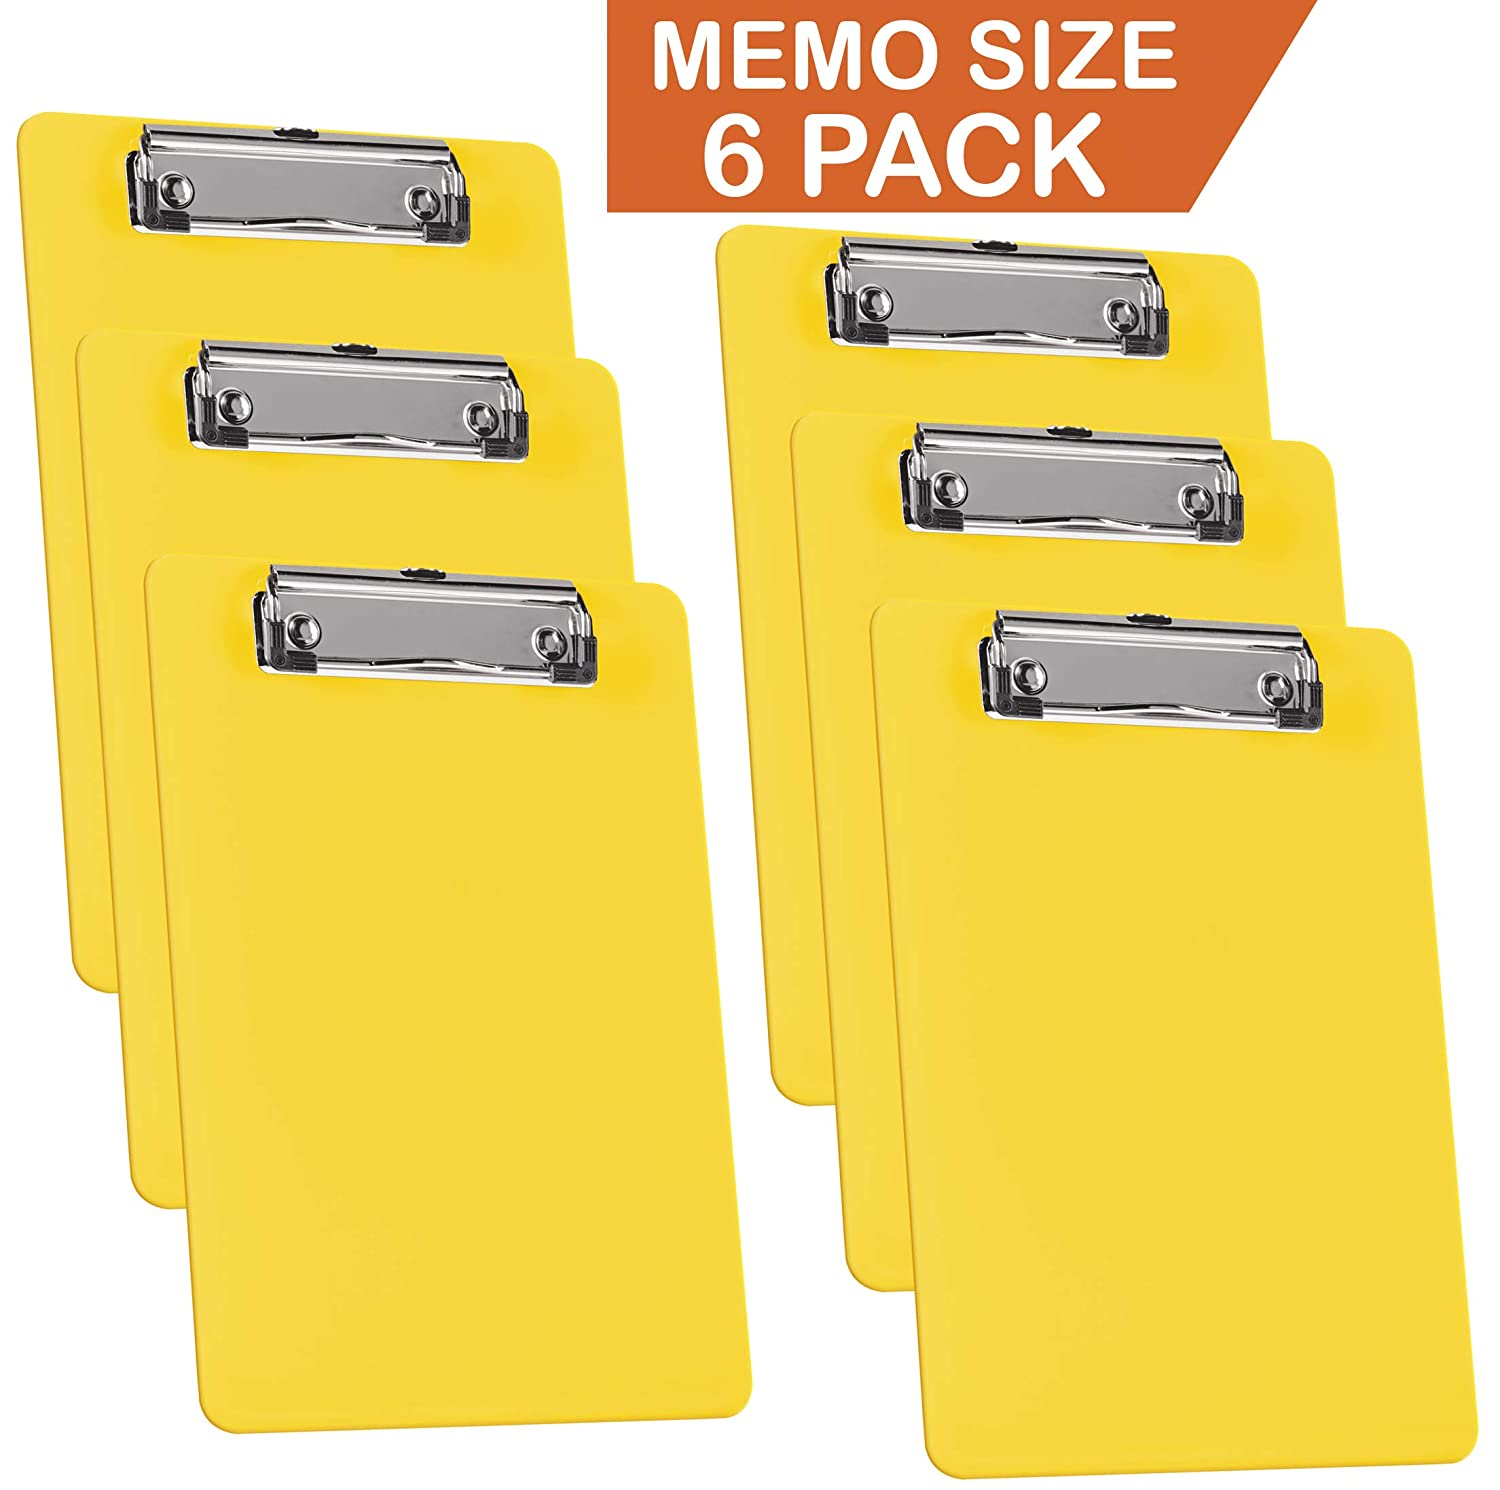 Acrimet Clipboard Memo Size A5 Wire Clip (Plastic) (Solid Yellow Color) (6 Pack) 137C.A.C